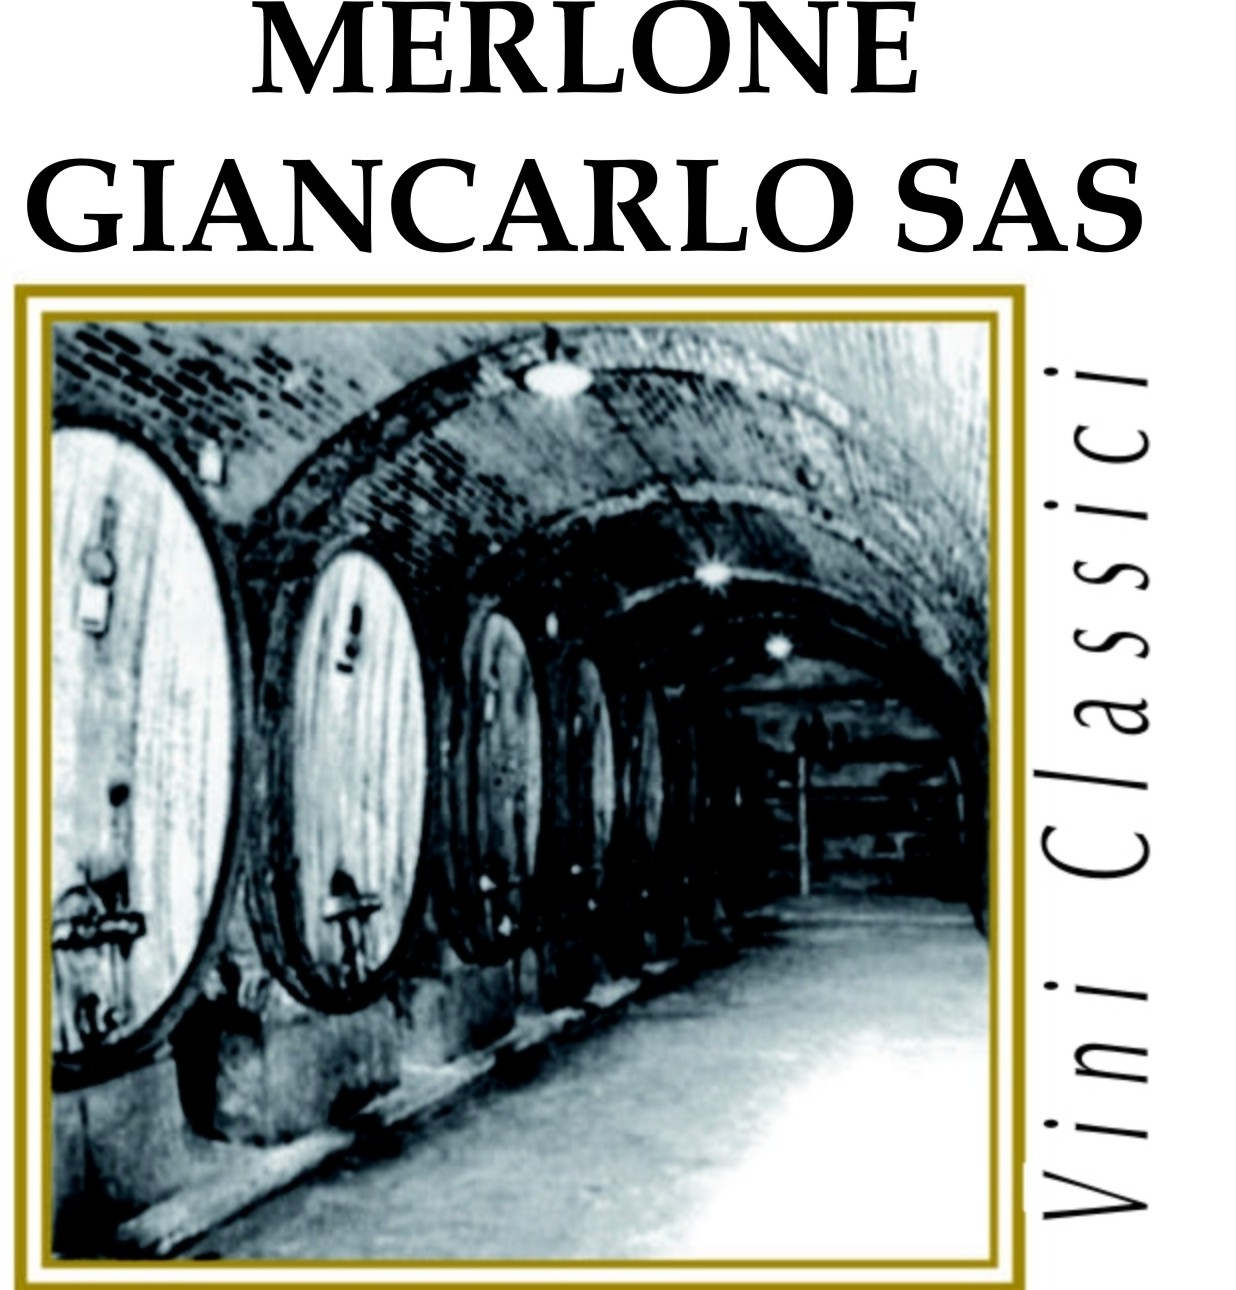 CANTINE MERLONE GIANCARLO s.a.s.